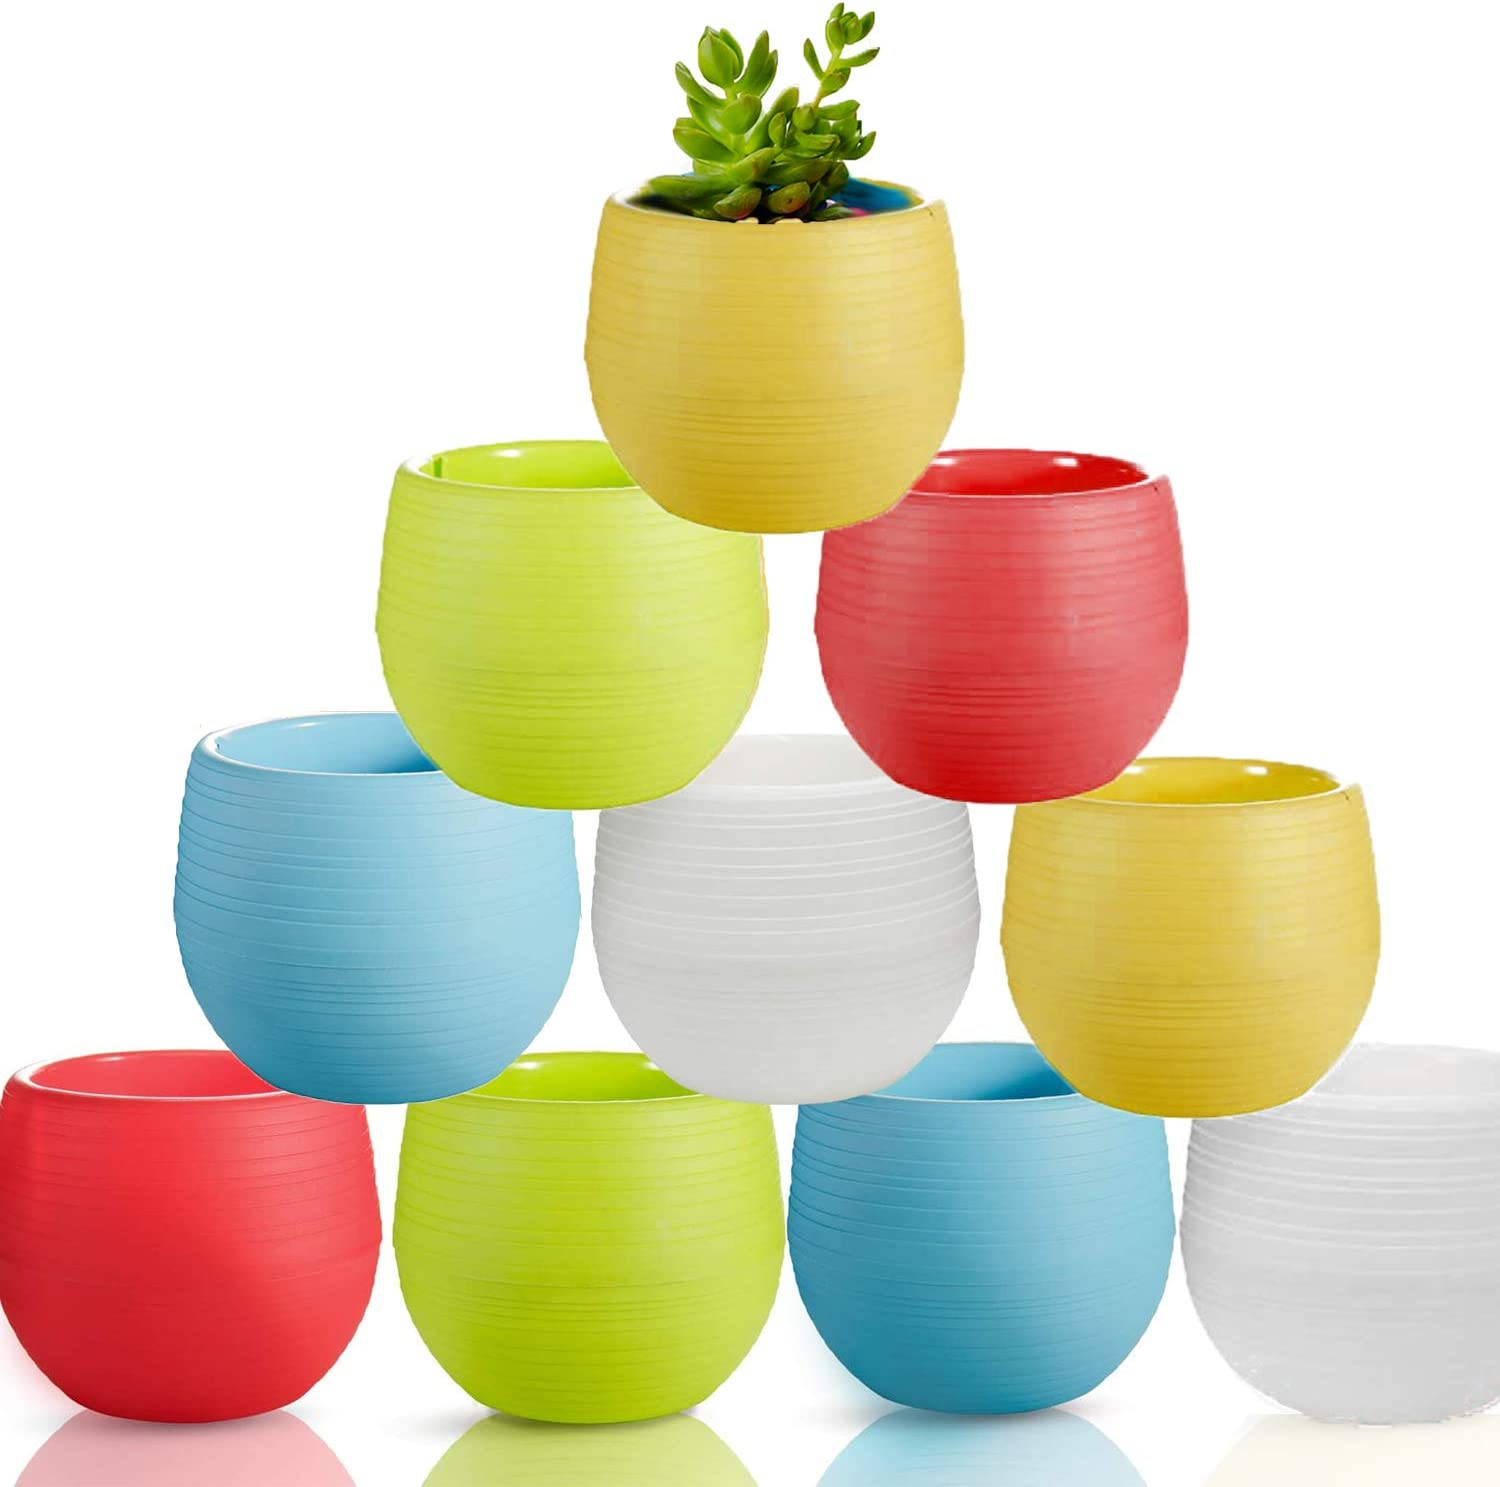 10 Pack Plant Pots with Drainage Indoor Outdoor, 2.7 Inch Plastic Succulents Pots Cute Egg Shaped Pots for Flowers,Cactus, Succulent,Seed Starting,Herbs, Decor Home Garden Office,5 Colorful